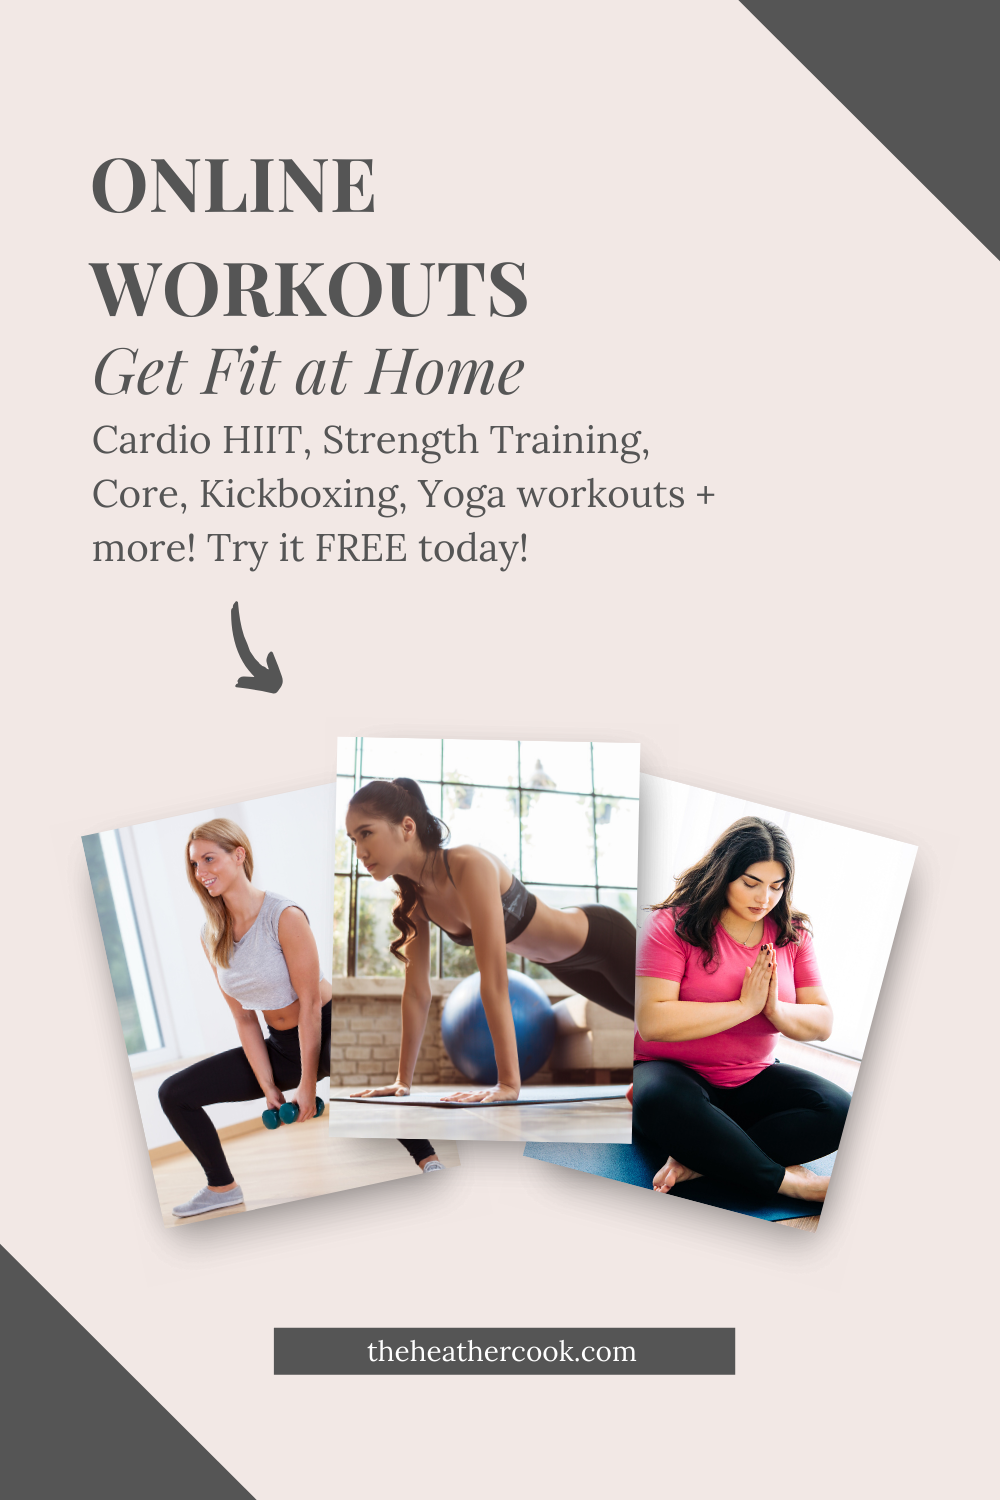 Workout easily from your home with online workouts like: Cardio HIIT, Strength Training, Yoga, Core, Kickboxing & more! All the resources & workouts to help you get fit and strong at home.  #fitness #workouts #exercise #cardio #HIIT #fitnessmotivation #workoutfromhome #onlineworkouts #healthandfitness #strengthtraining #yoga #core